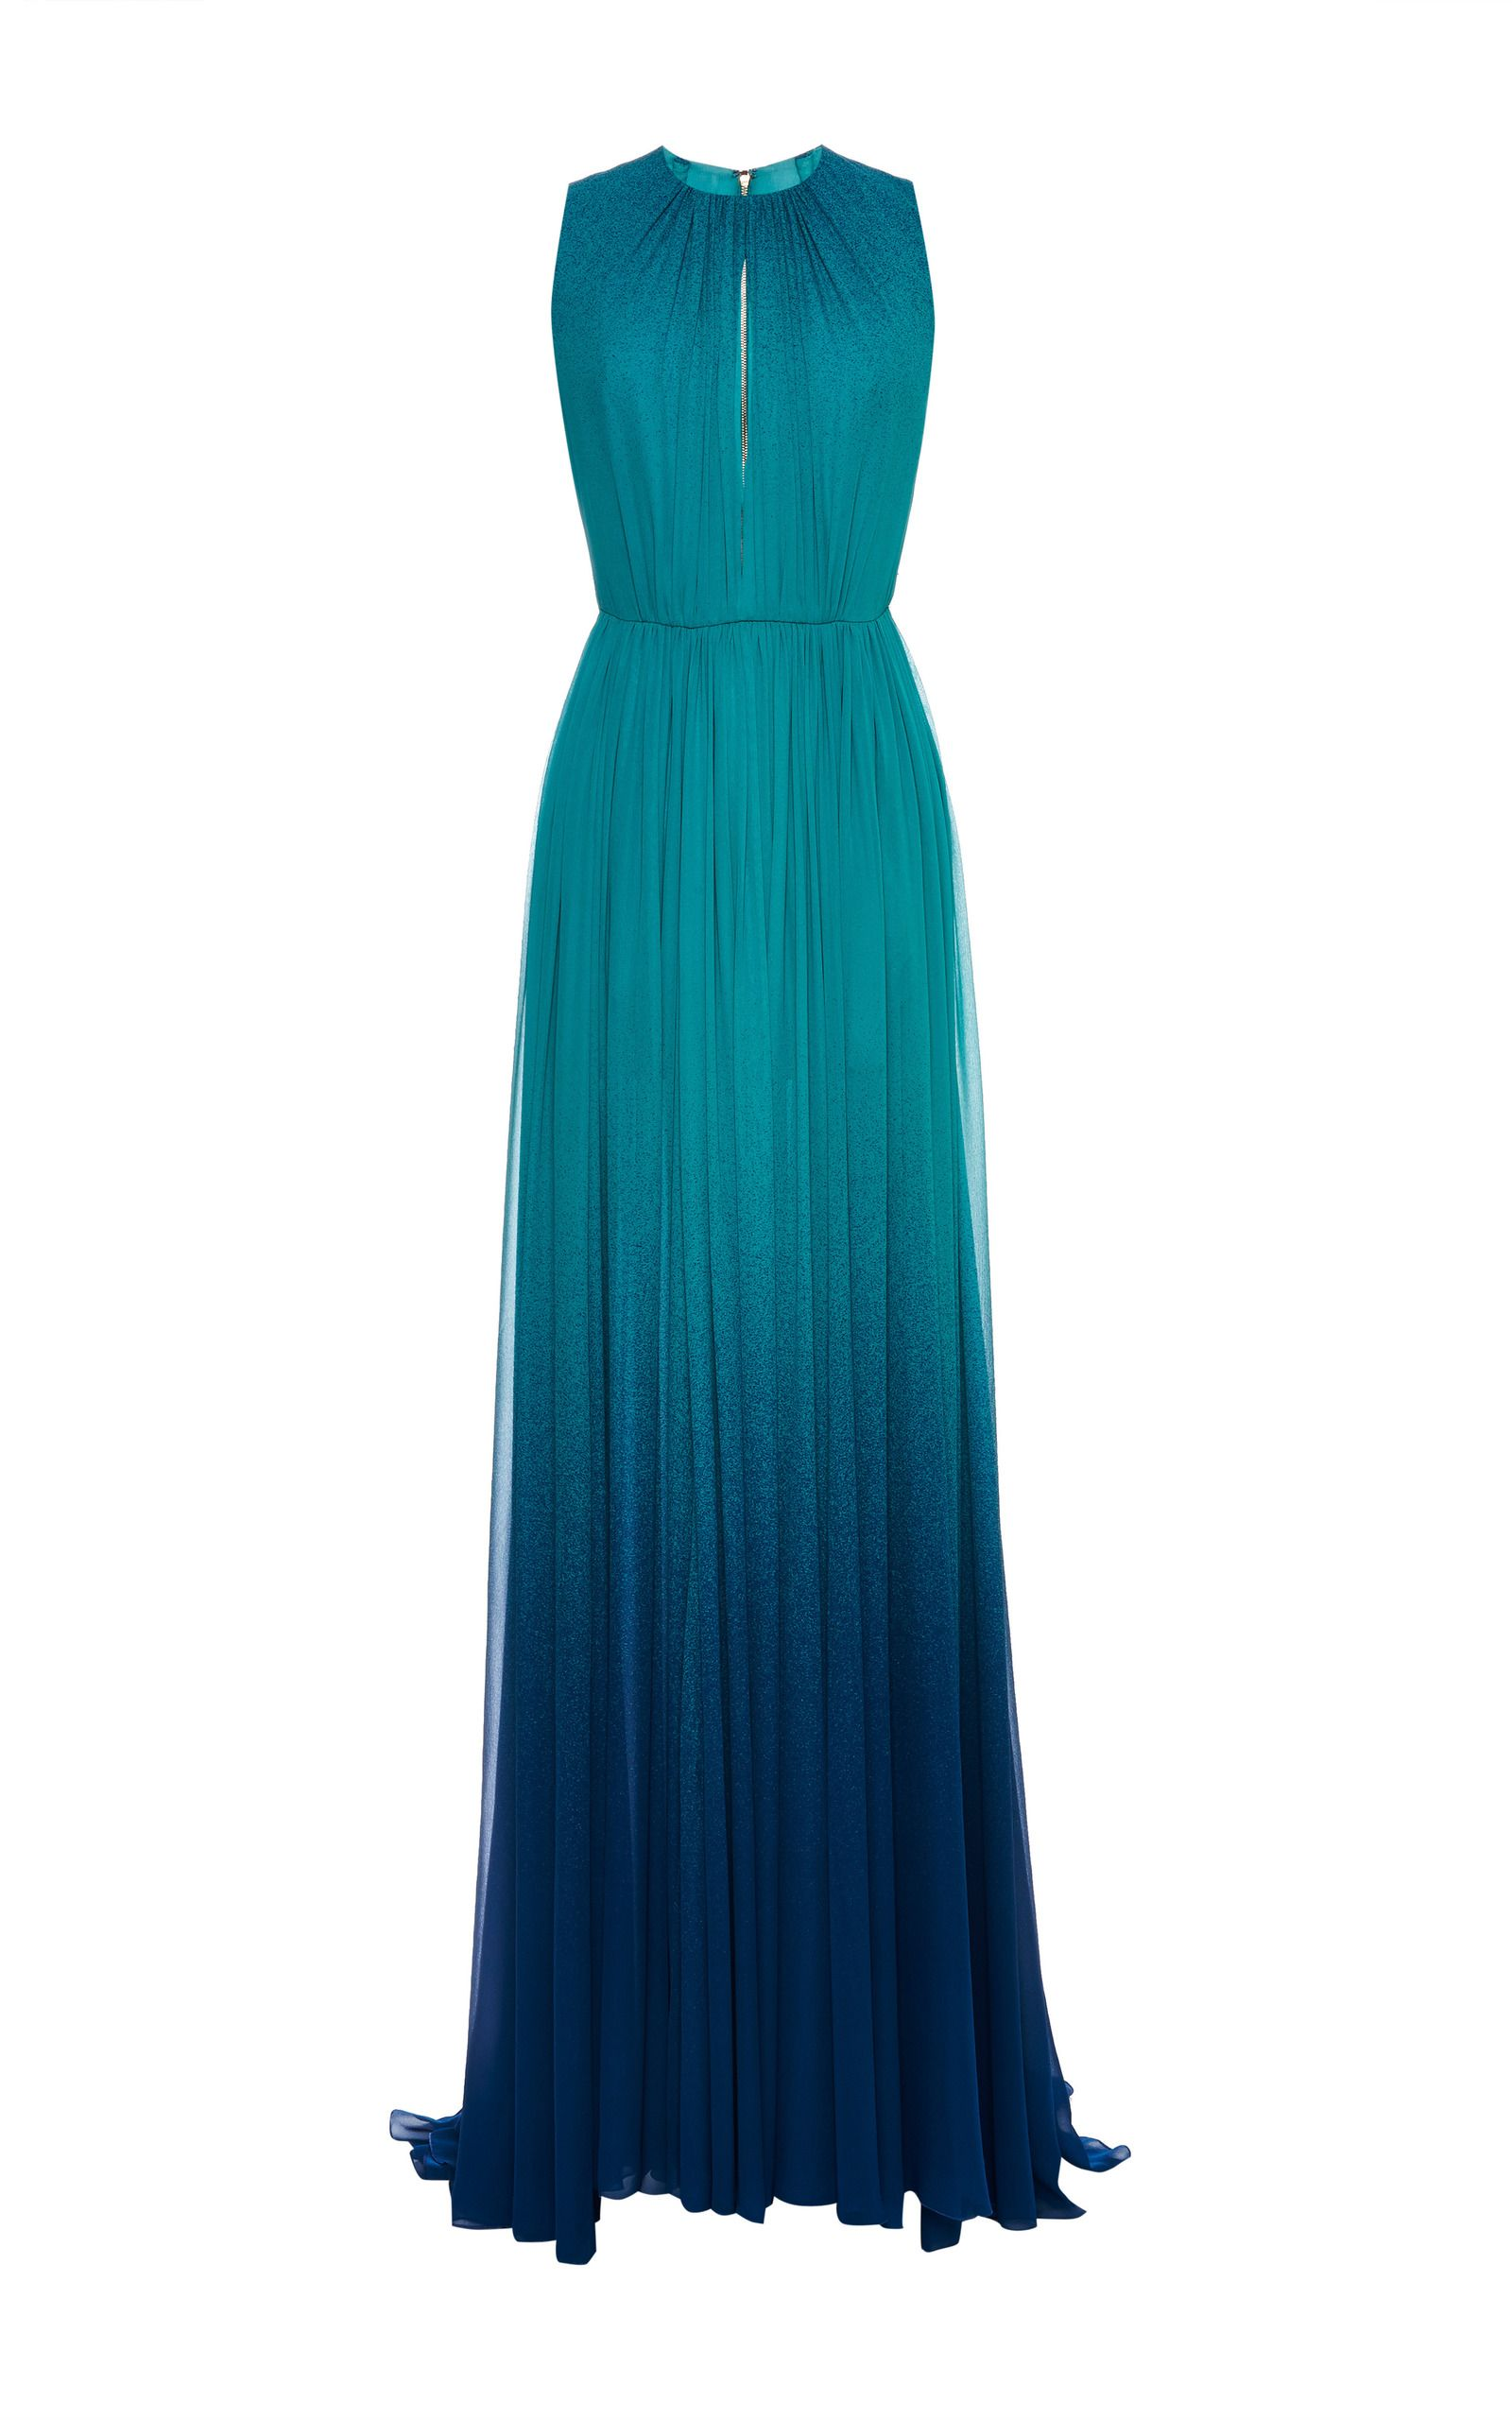 Turquoise Degrade Silk Georgette Dress by Elie Saab. Absolutely ...